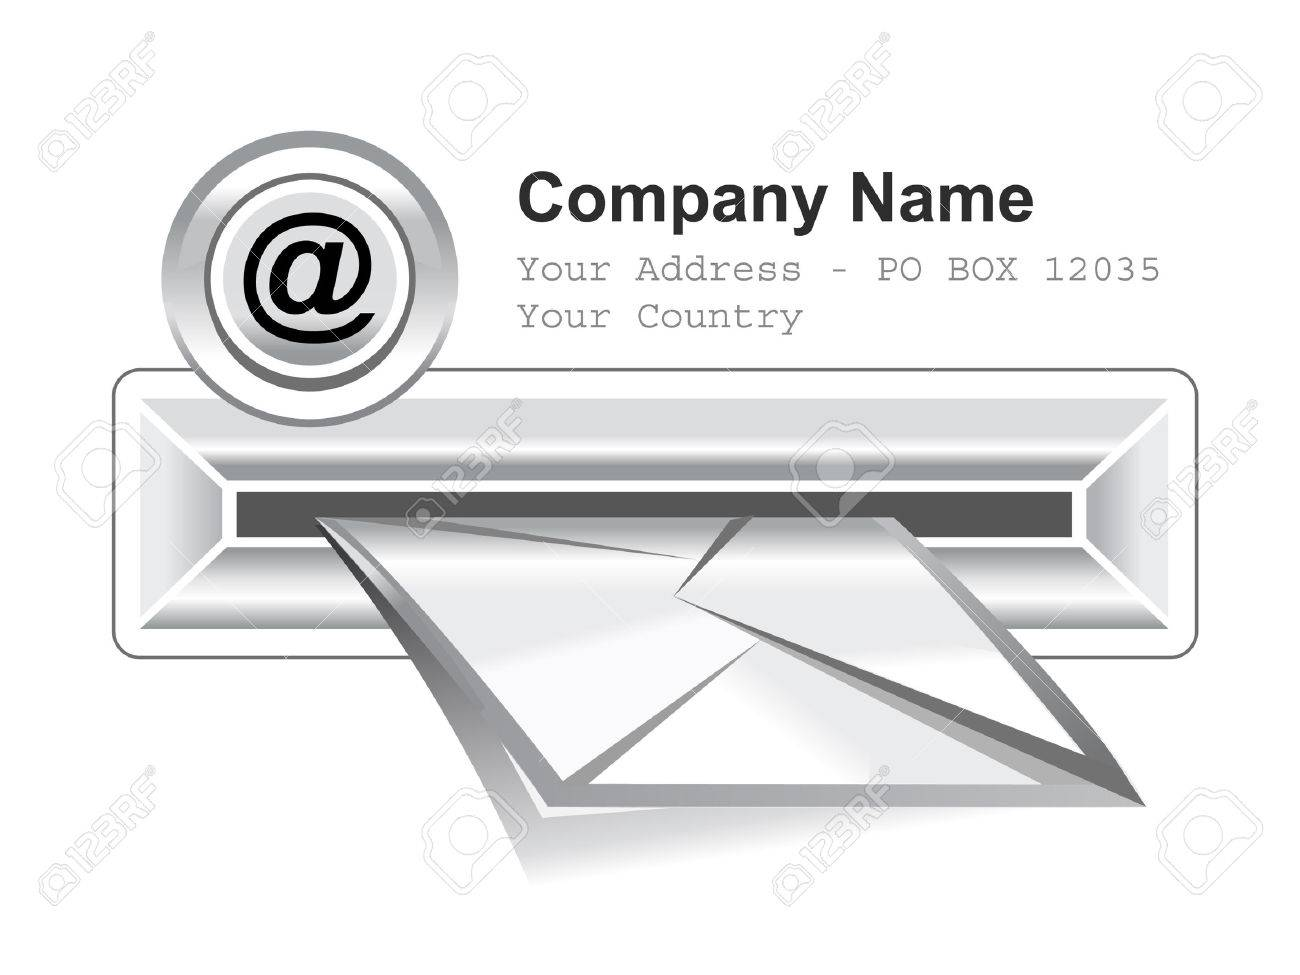 e-mail box vector icon in white background Stock Vector - 5271403